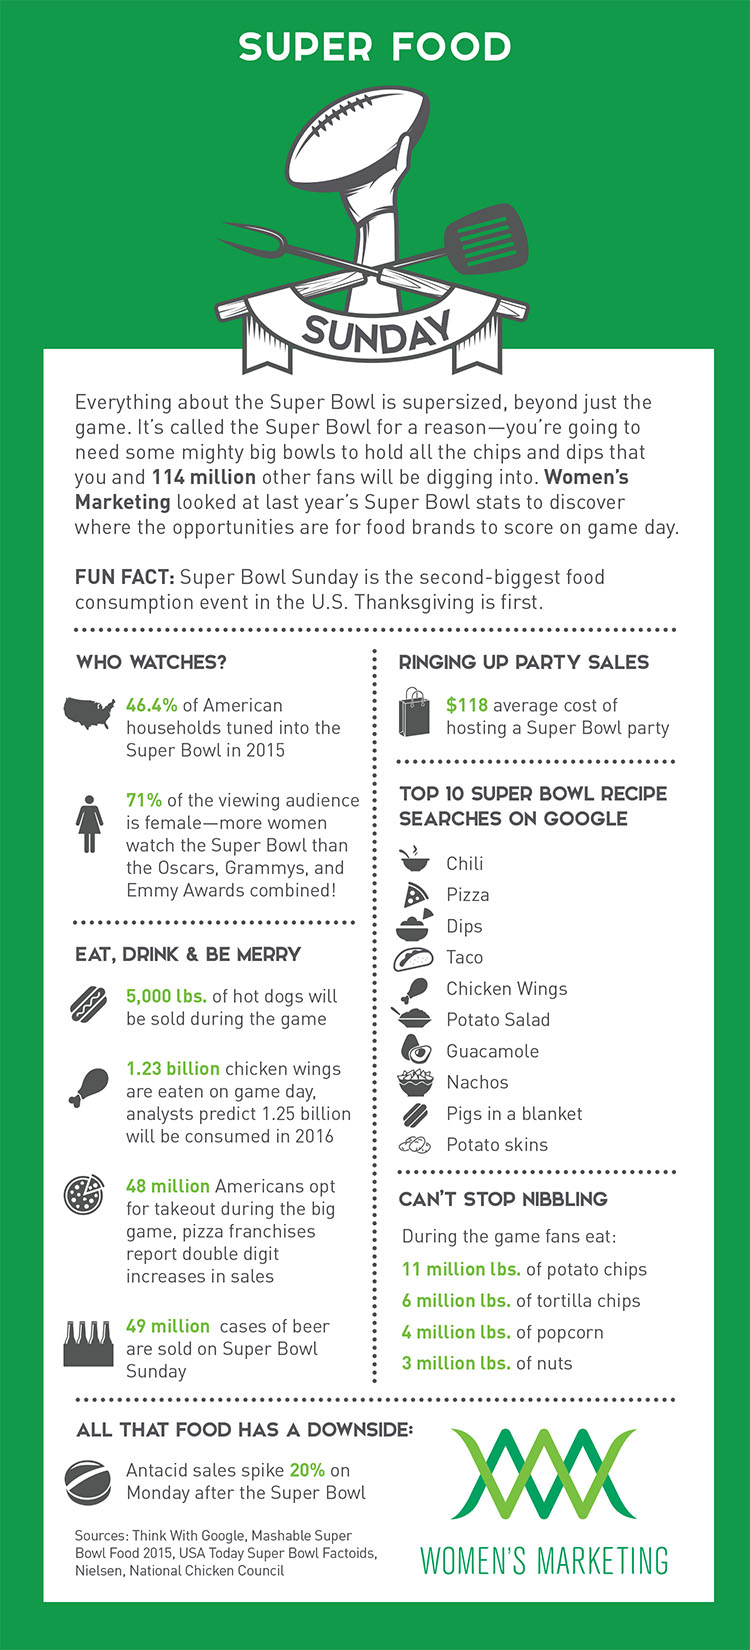 Superfood Sunday Infographic